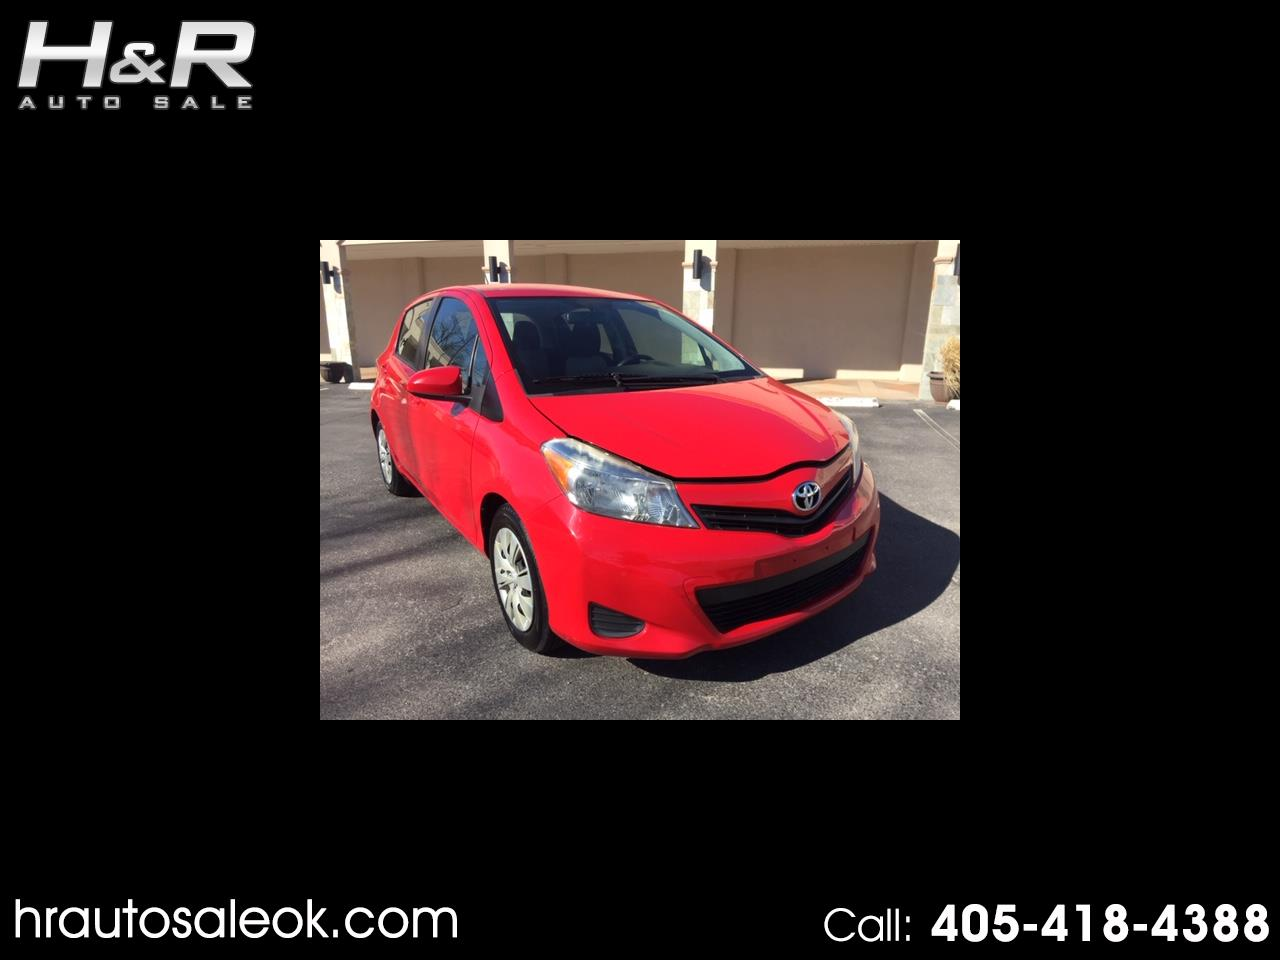 2012 Toyota Yaris LE 5-Door AT